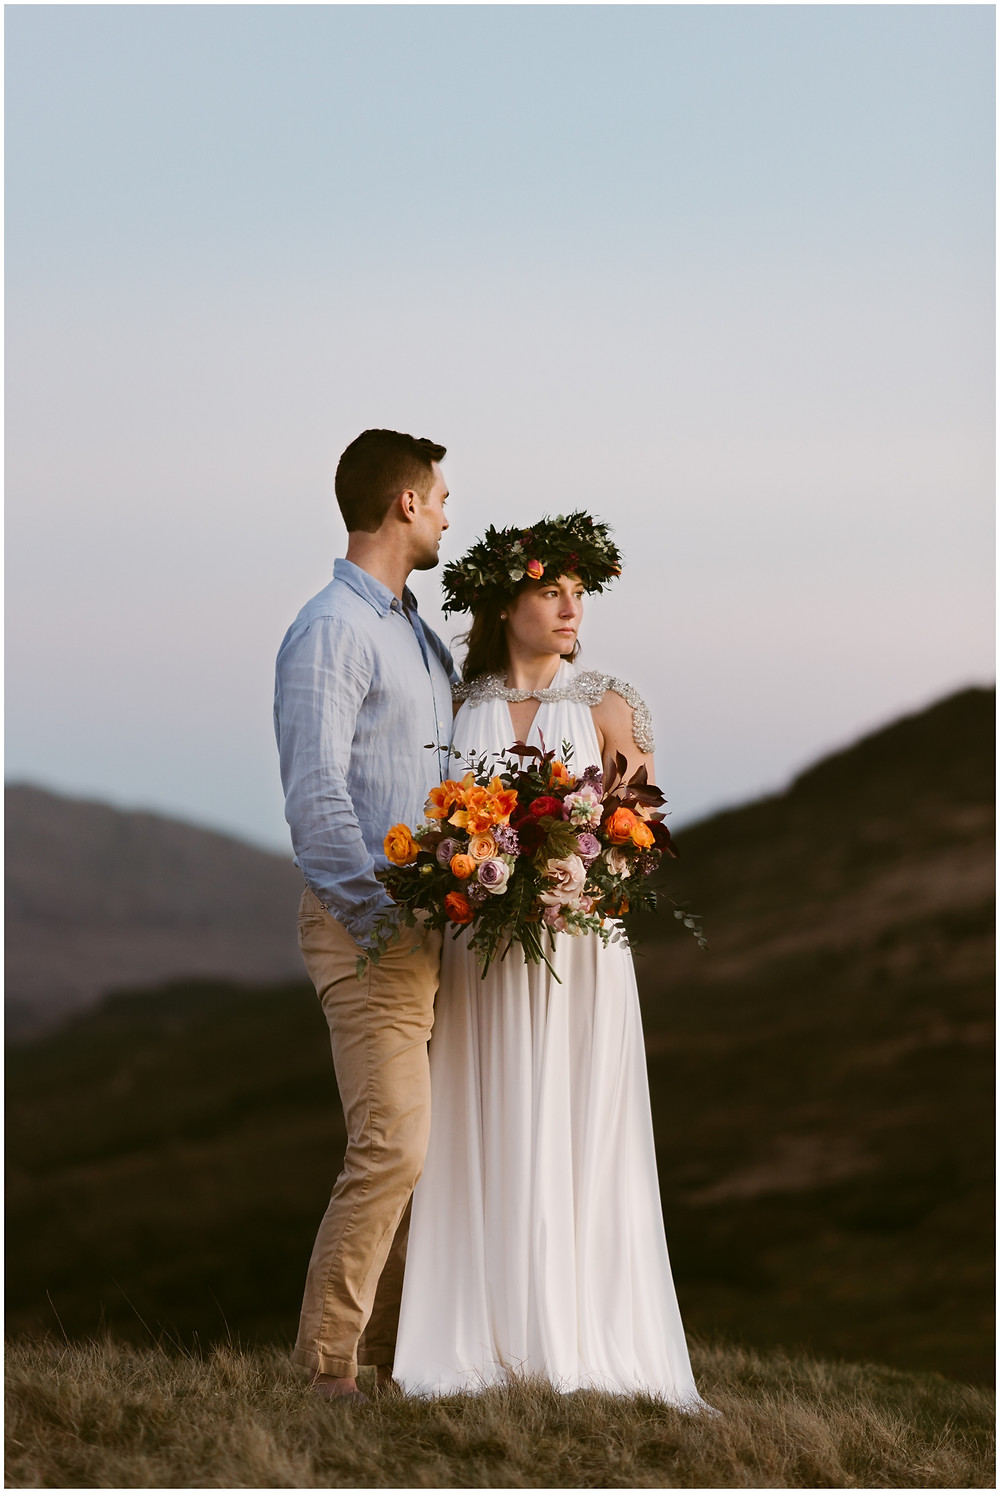 Lake District National Park, UK outdoor wedding